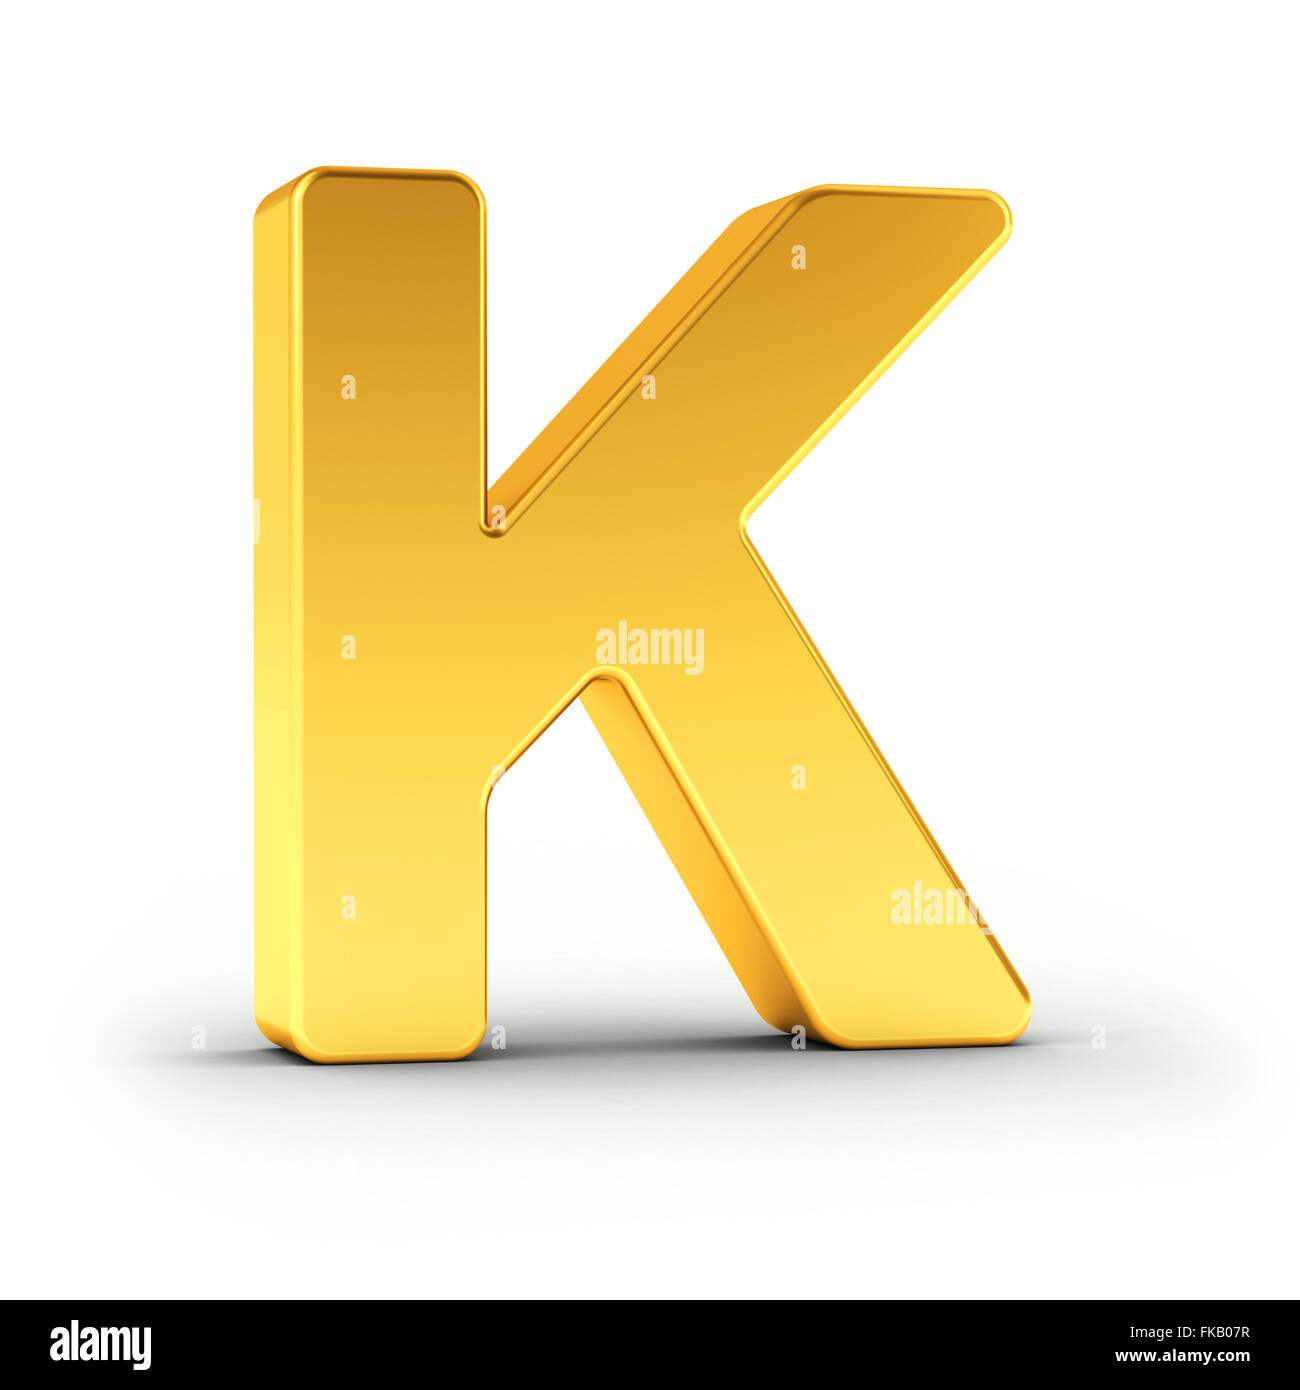 The Letter K as a polished golden object - Stock Image